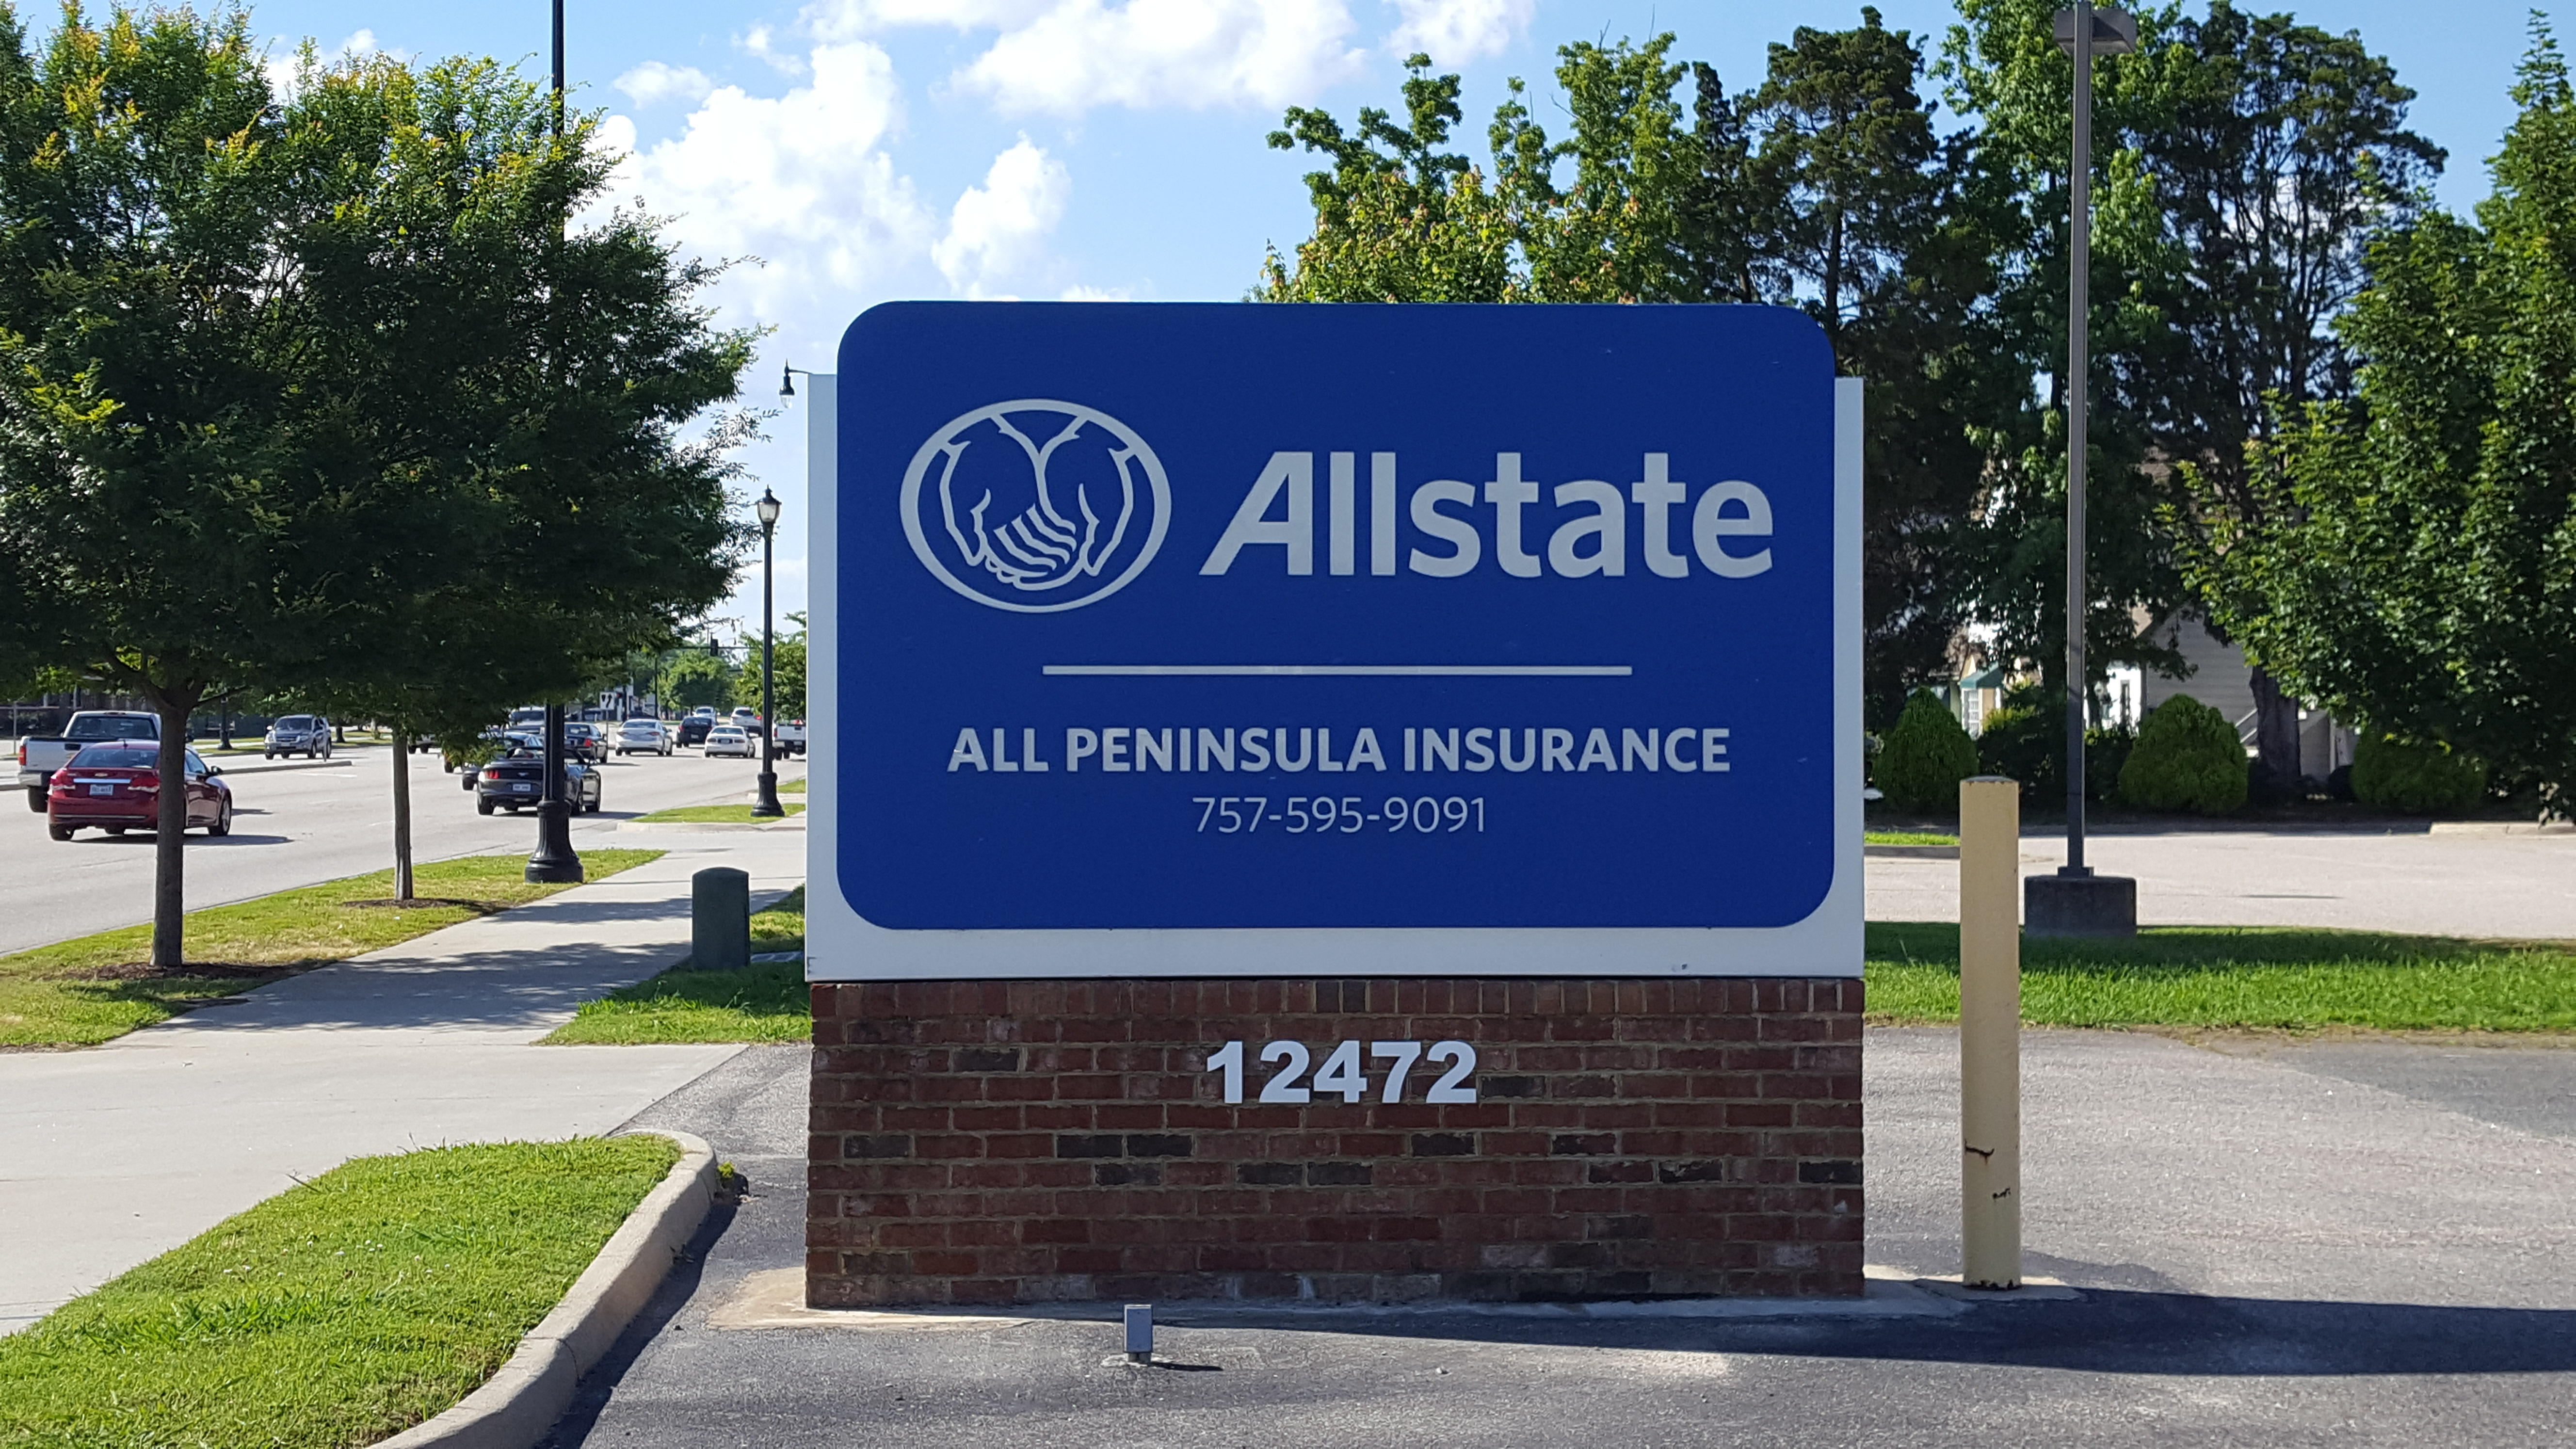 Nelson Kelley Allstate Insurance, Newport News Virginia. Buy Cheap Business Cards Herbs For Tooth Pain. Electrolux Central Vacuums Simple Teddy Bear. Hairmax Salon Software Engagement Ring Prongs. Drivers Safety Course Texas Online. Lafayette La Community College. Registered Nurse Career Magic Quadrant Leader. Game Programming Course Car Warranty Programs. Act Prep Classes In Chicago Stop Smoking Nyc